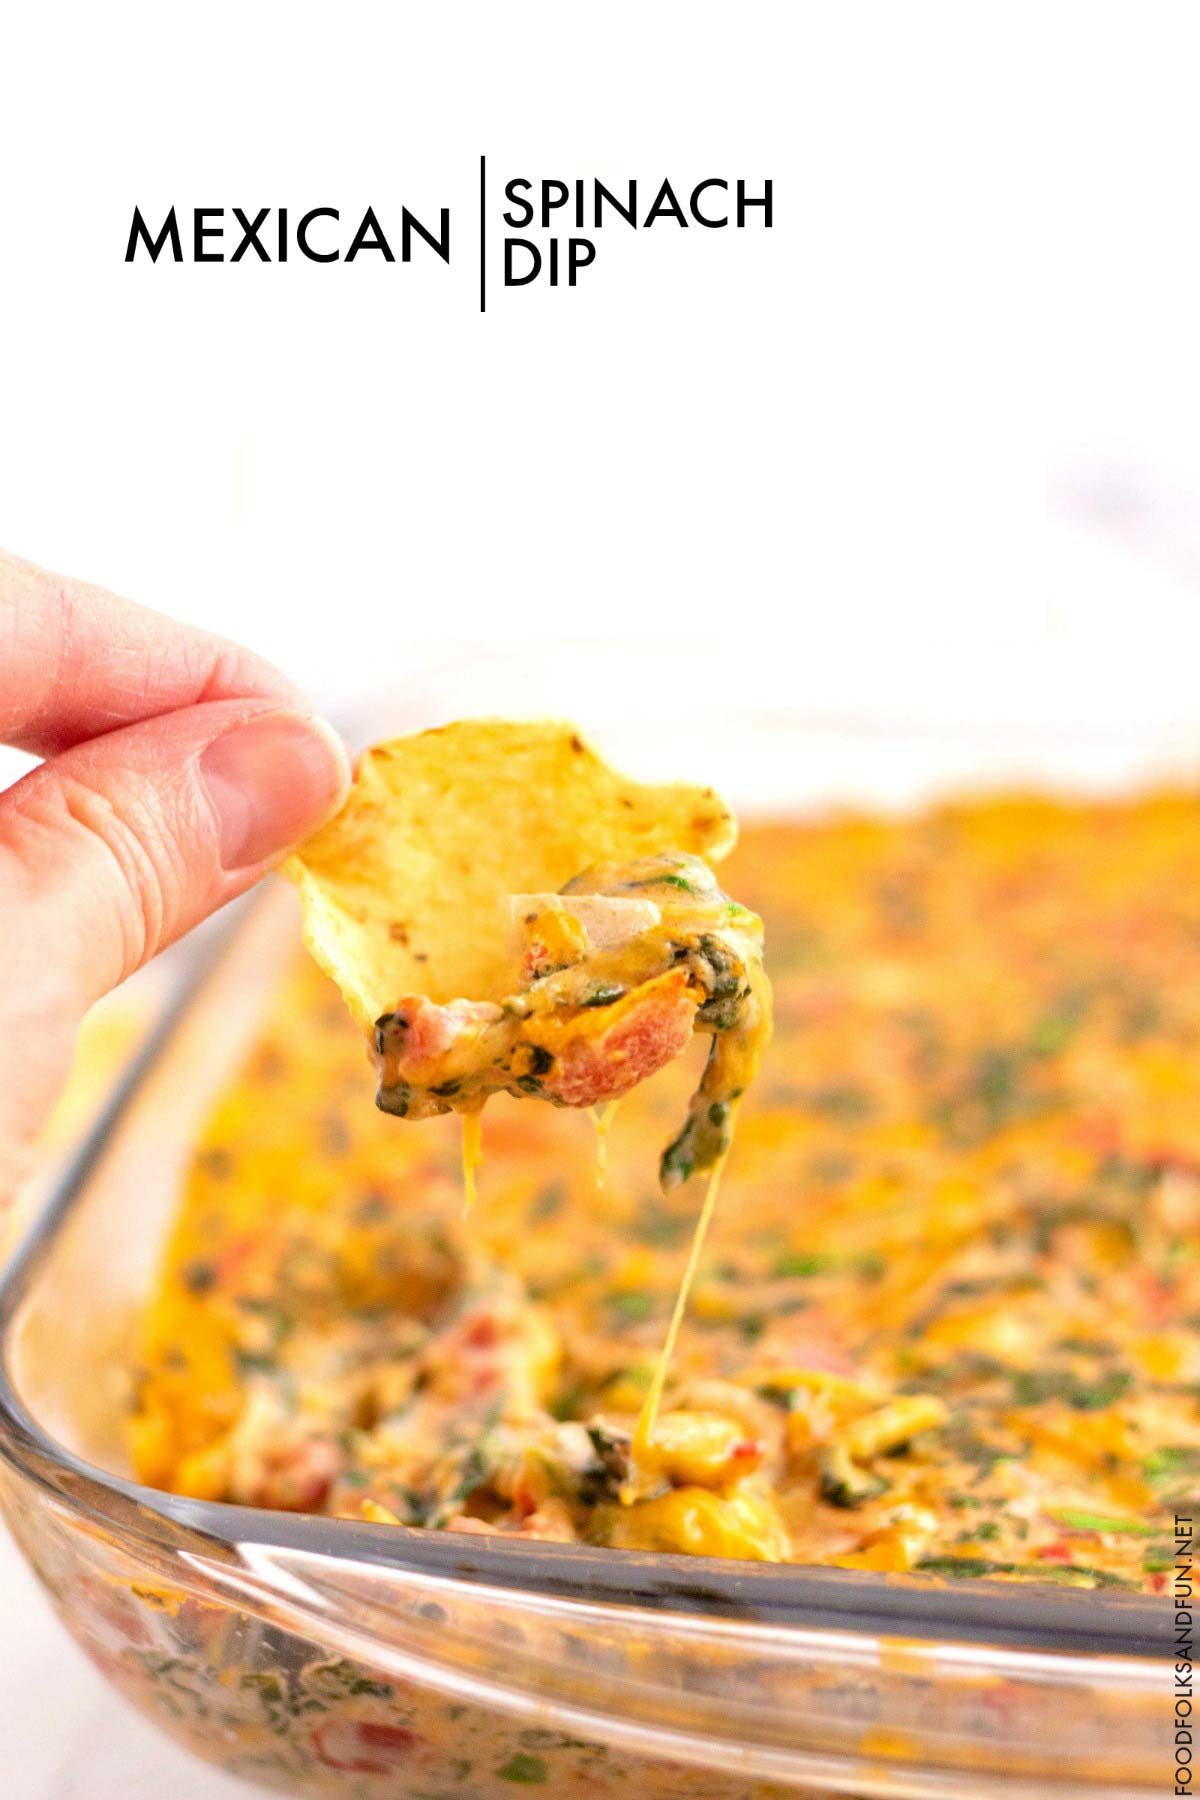 This Mexican Spinach Dip is some serious comfort food!